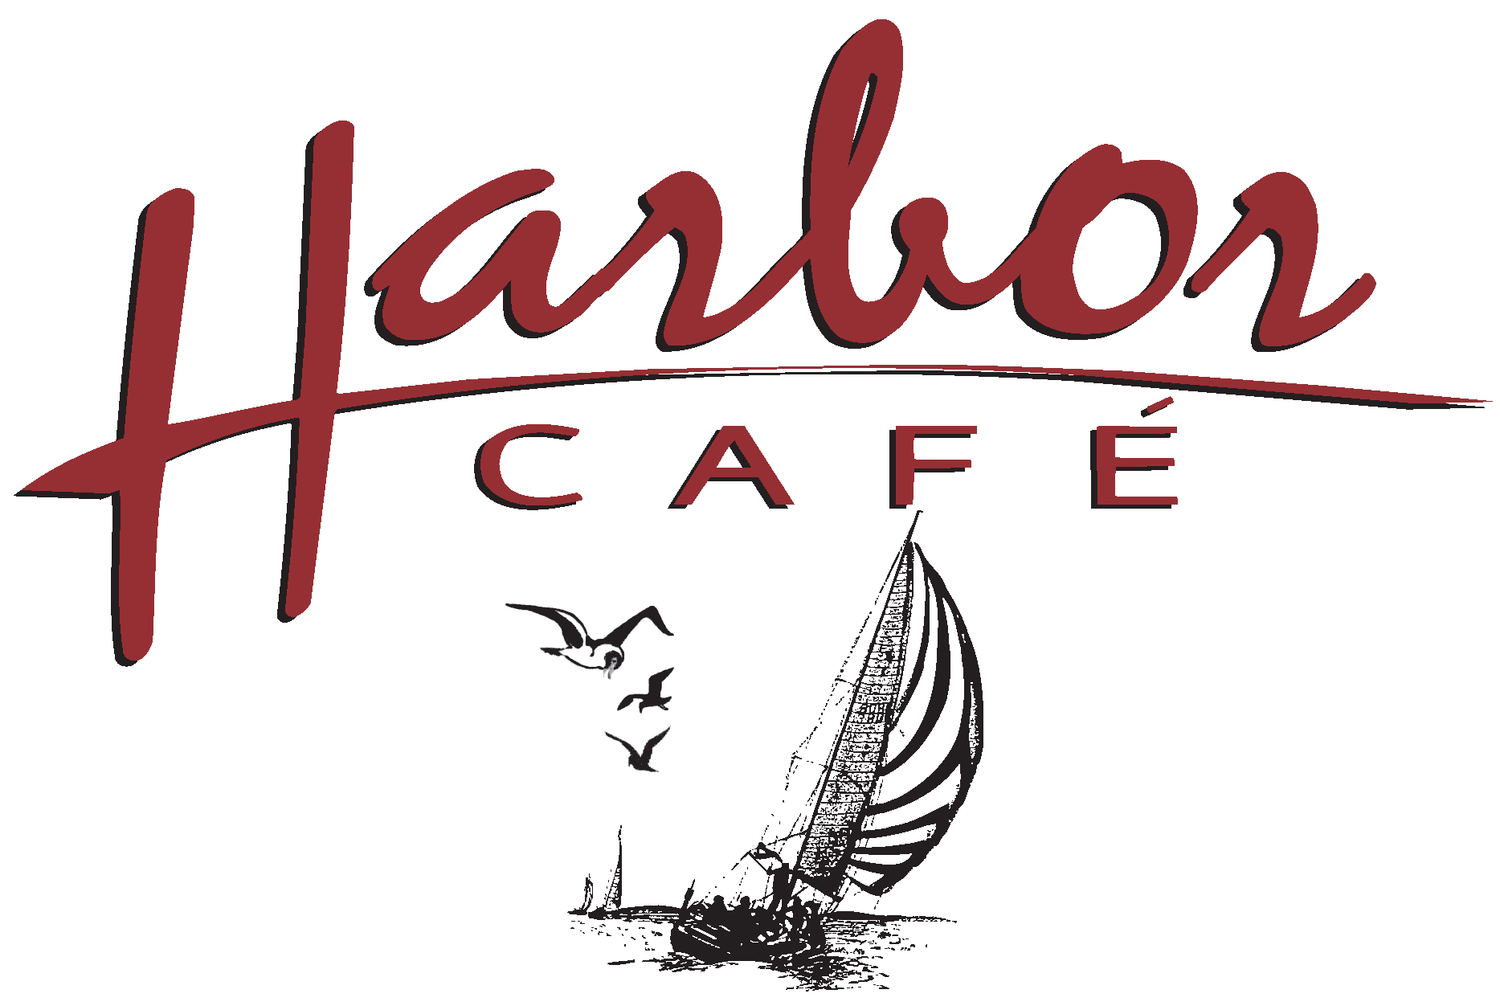 Harbor Cafe | Steak & Seafood Restaurant - Clarksville TN